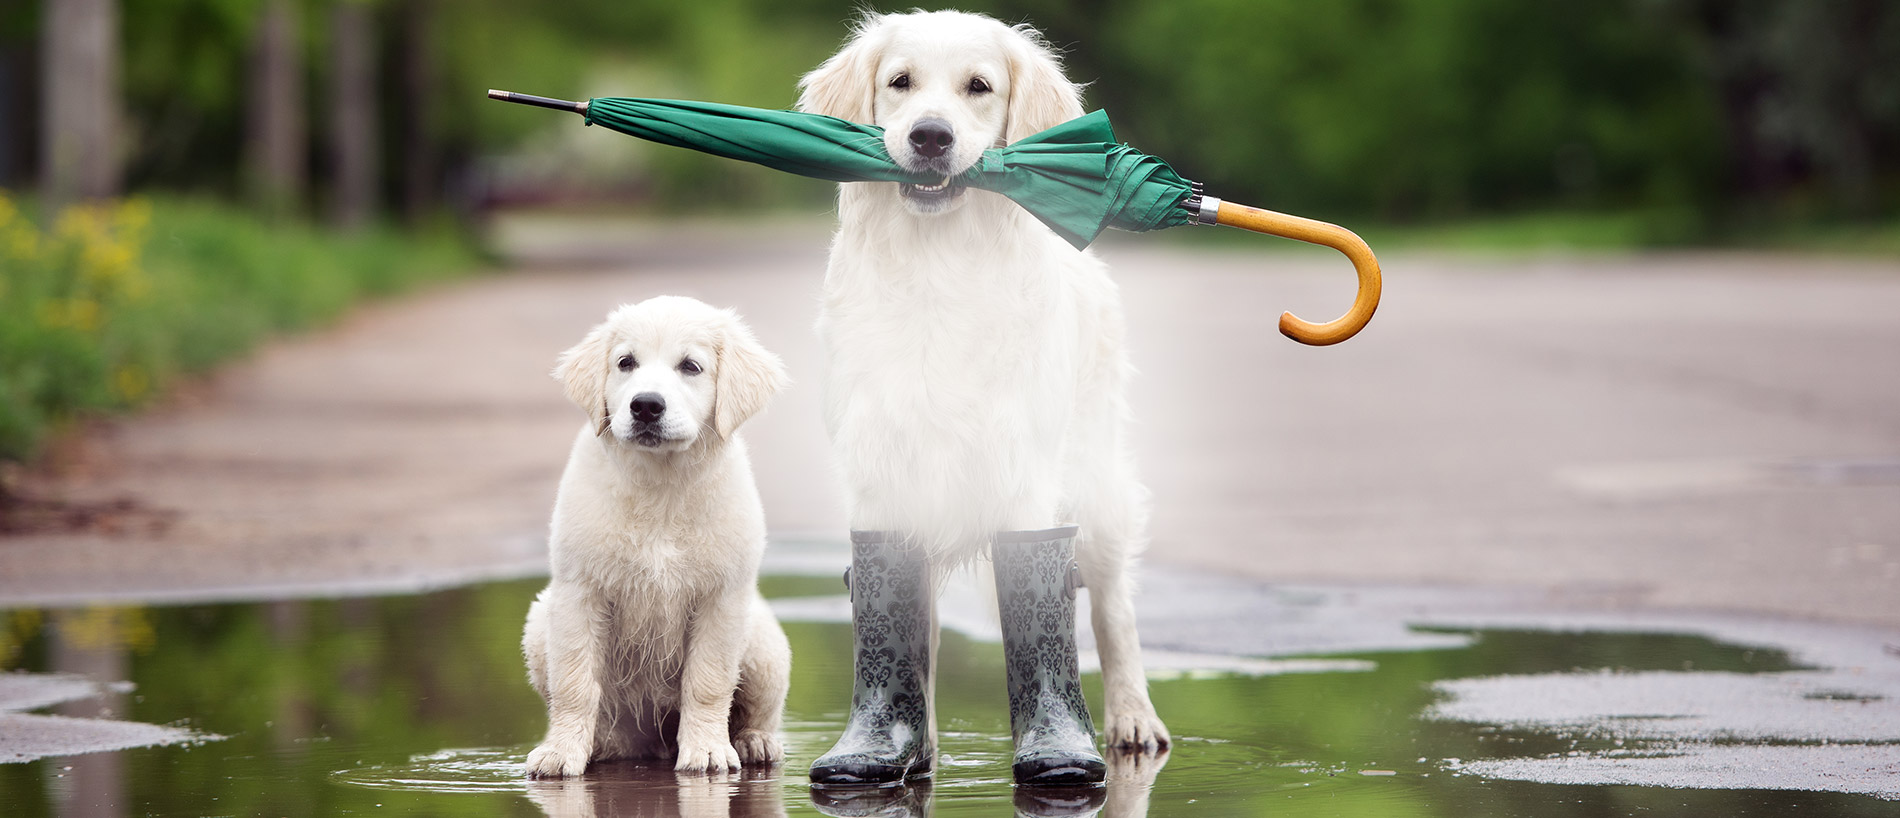 Welcome Fall - Dogs + umbrella banner